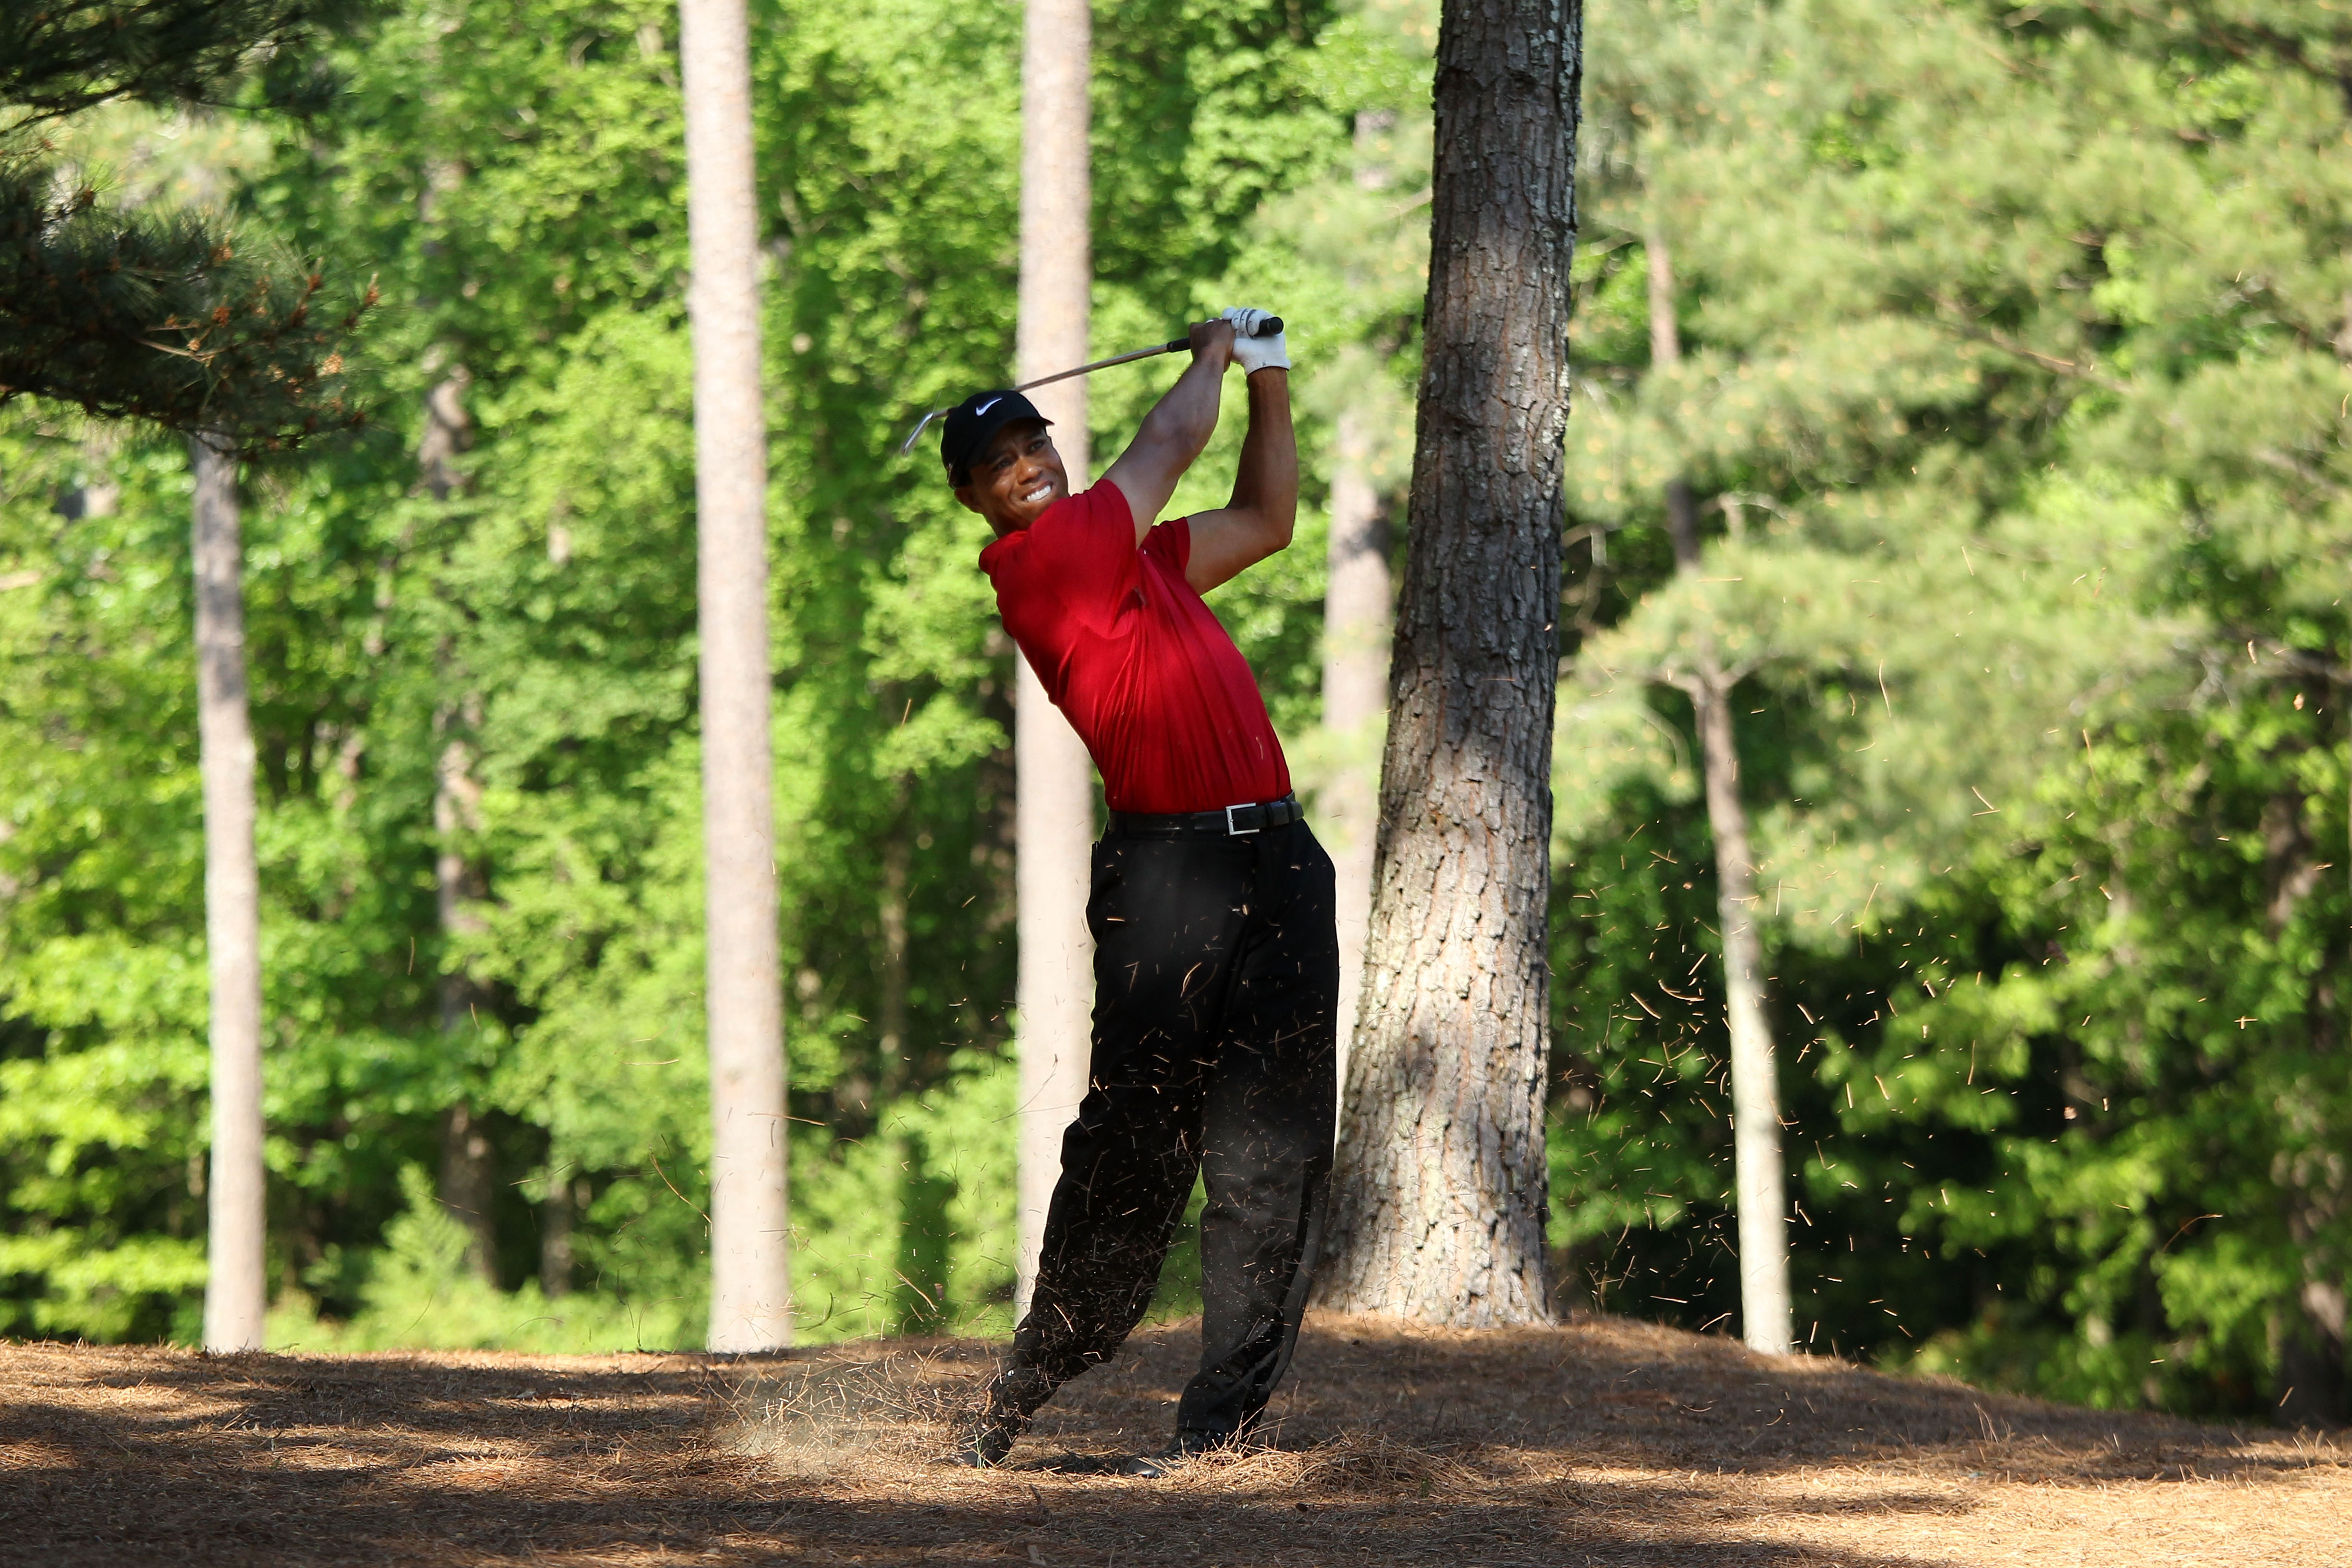 AUGUSTA, GA - APRIL 11:  Tiger Woods plays a shot from the pine needles on the 13th hole during the final round of the 2010 Masters Tournament at Augusta National Golf Club on April 11, 2010 in Augusta, Georgia.  (Photo by David Cannon/Getty Images)